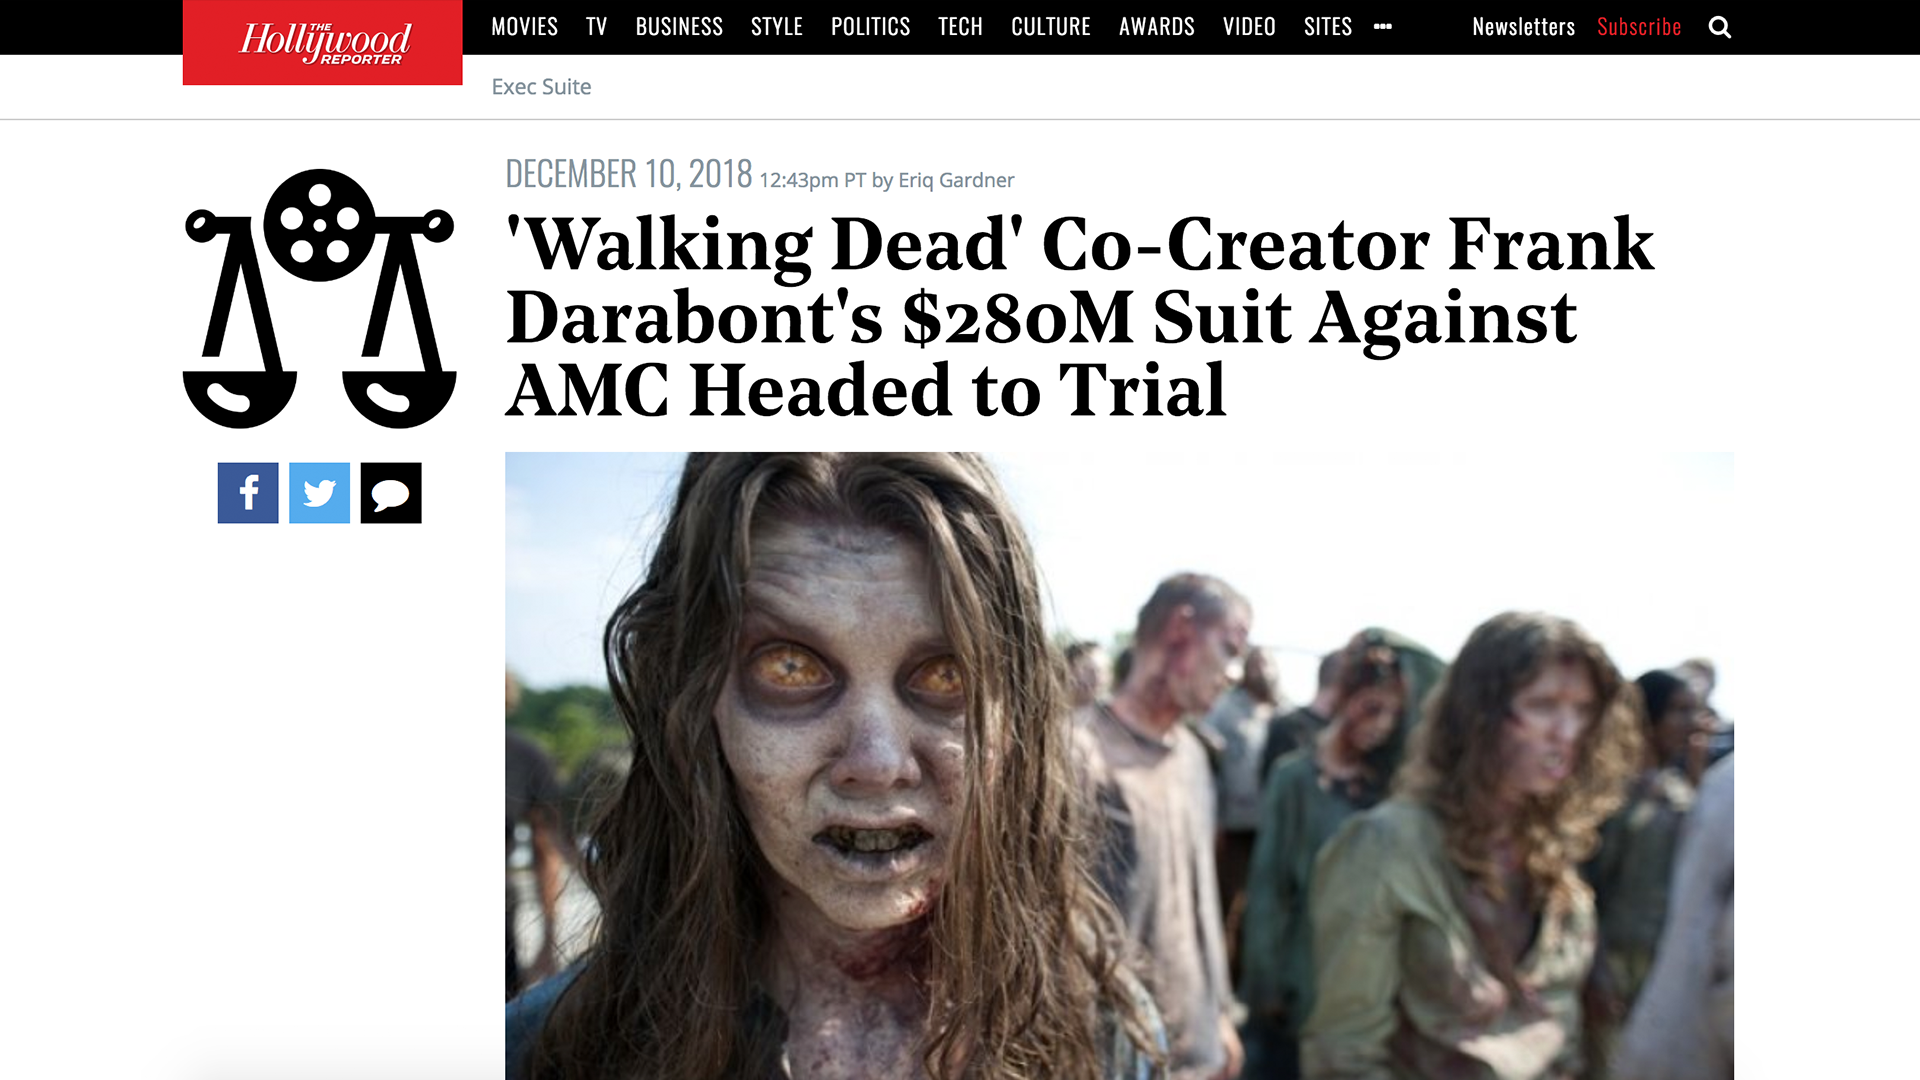 Fairness Rocks News 'Walking Dead' Co-Creator Frank Darabont's $280M Suit Against AMC Headed to Trial